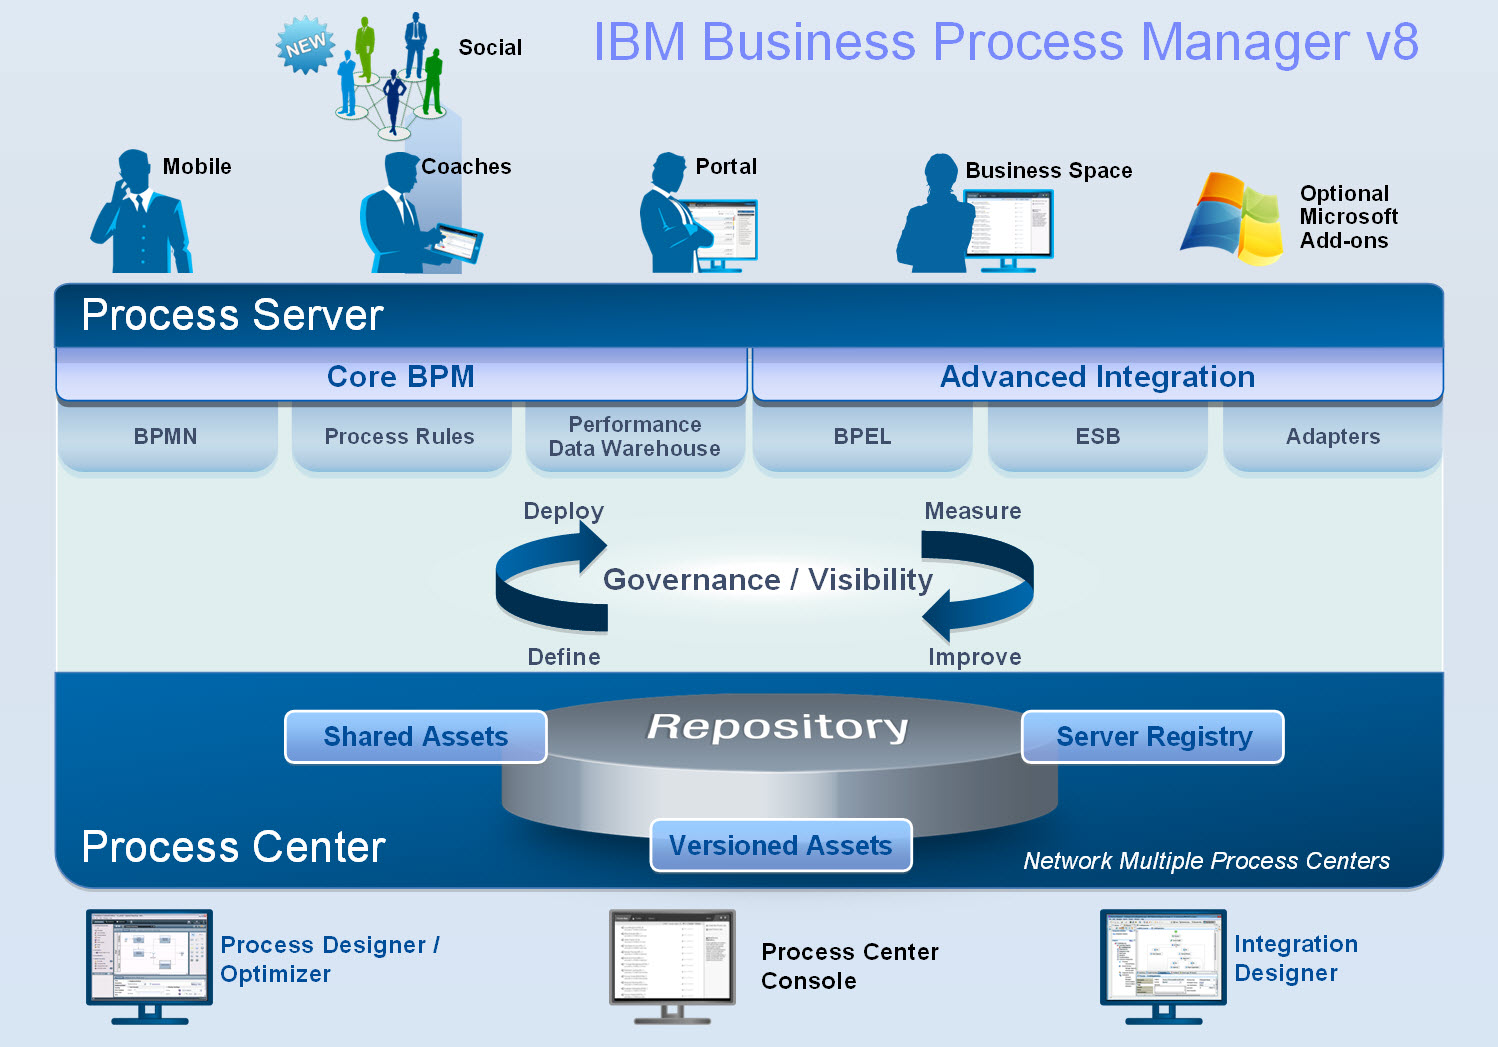 business process management Business process management (bpm) is the discipline of improving a business process from end to end by analyzing it, modelling how it works in different scenarios, executing improvements, monitoring the improved process and continually optimizing it.